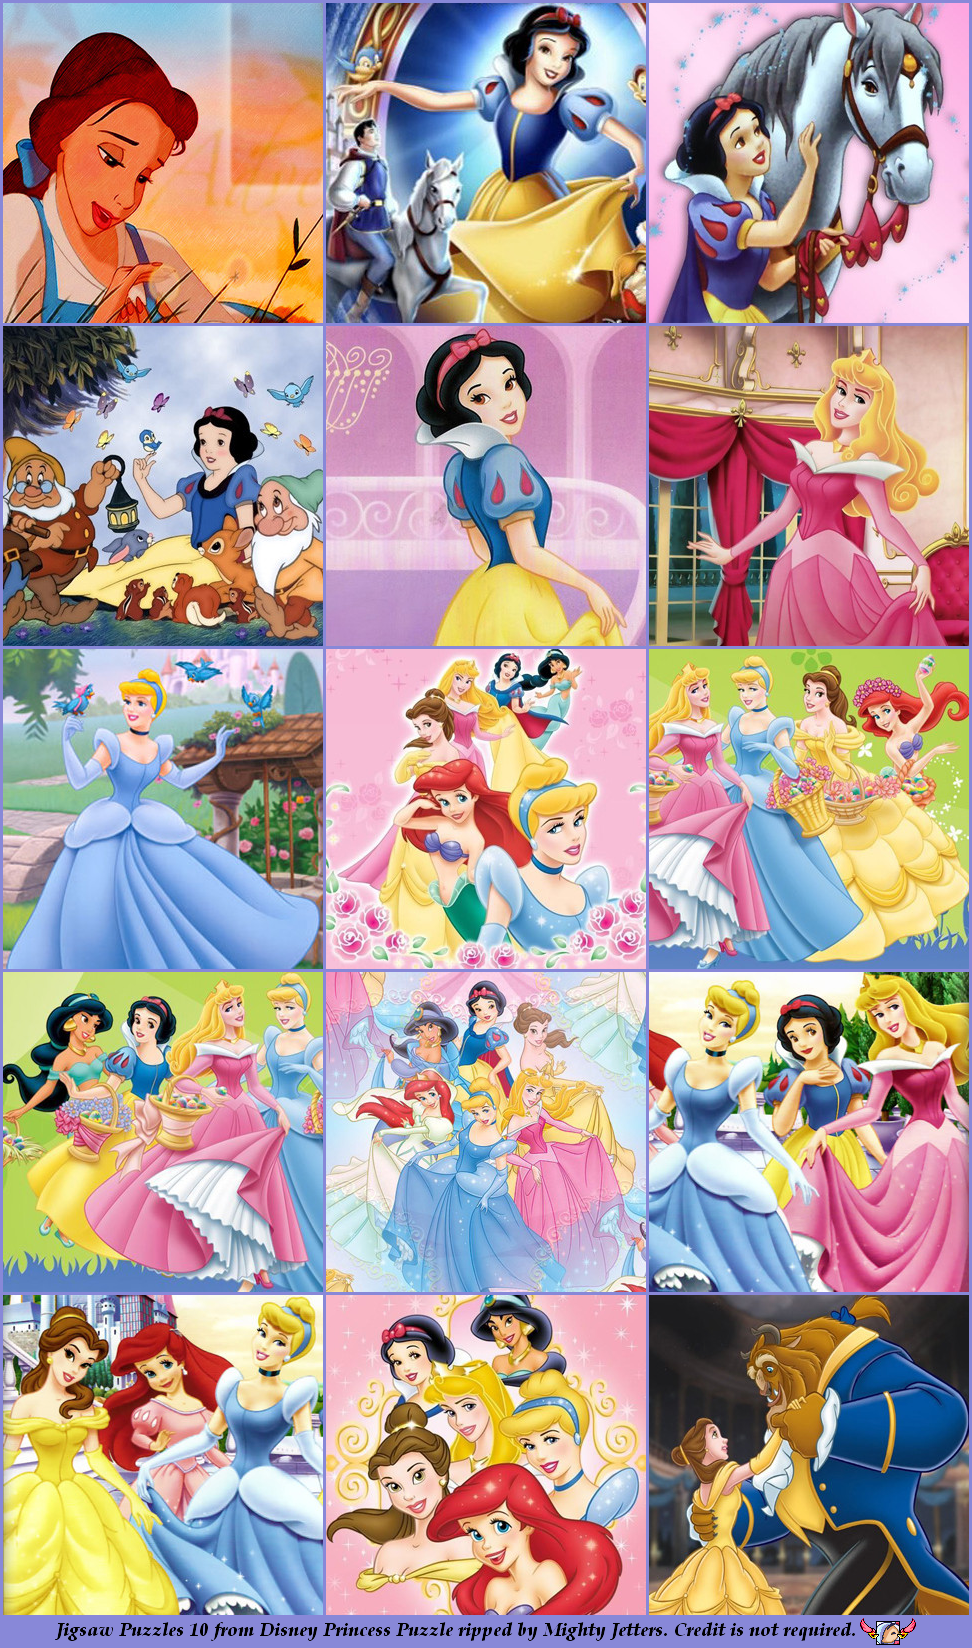 Mobile Disney Princess Puzzle Jigsaw Puzzles 10 The Spriters